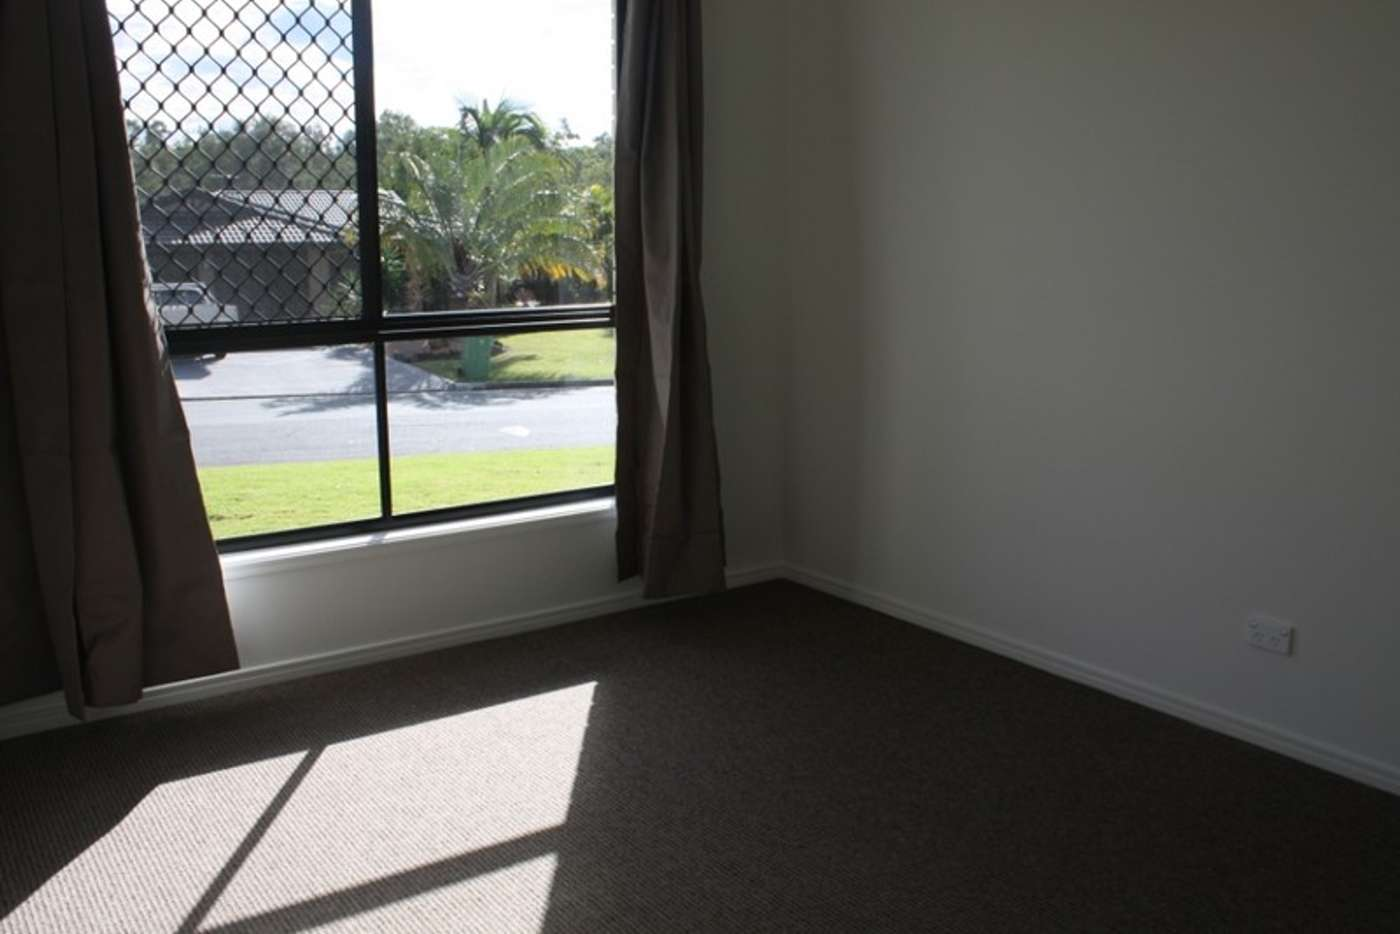 Sixth view of Homely house listing, 1/1 Chinook Court, Brassall QLD 4305